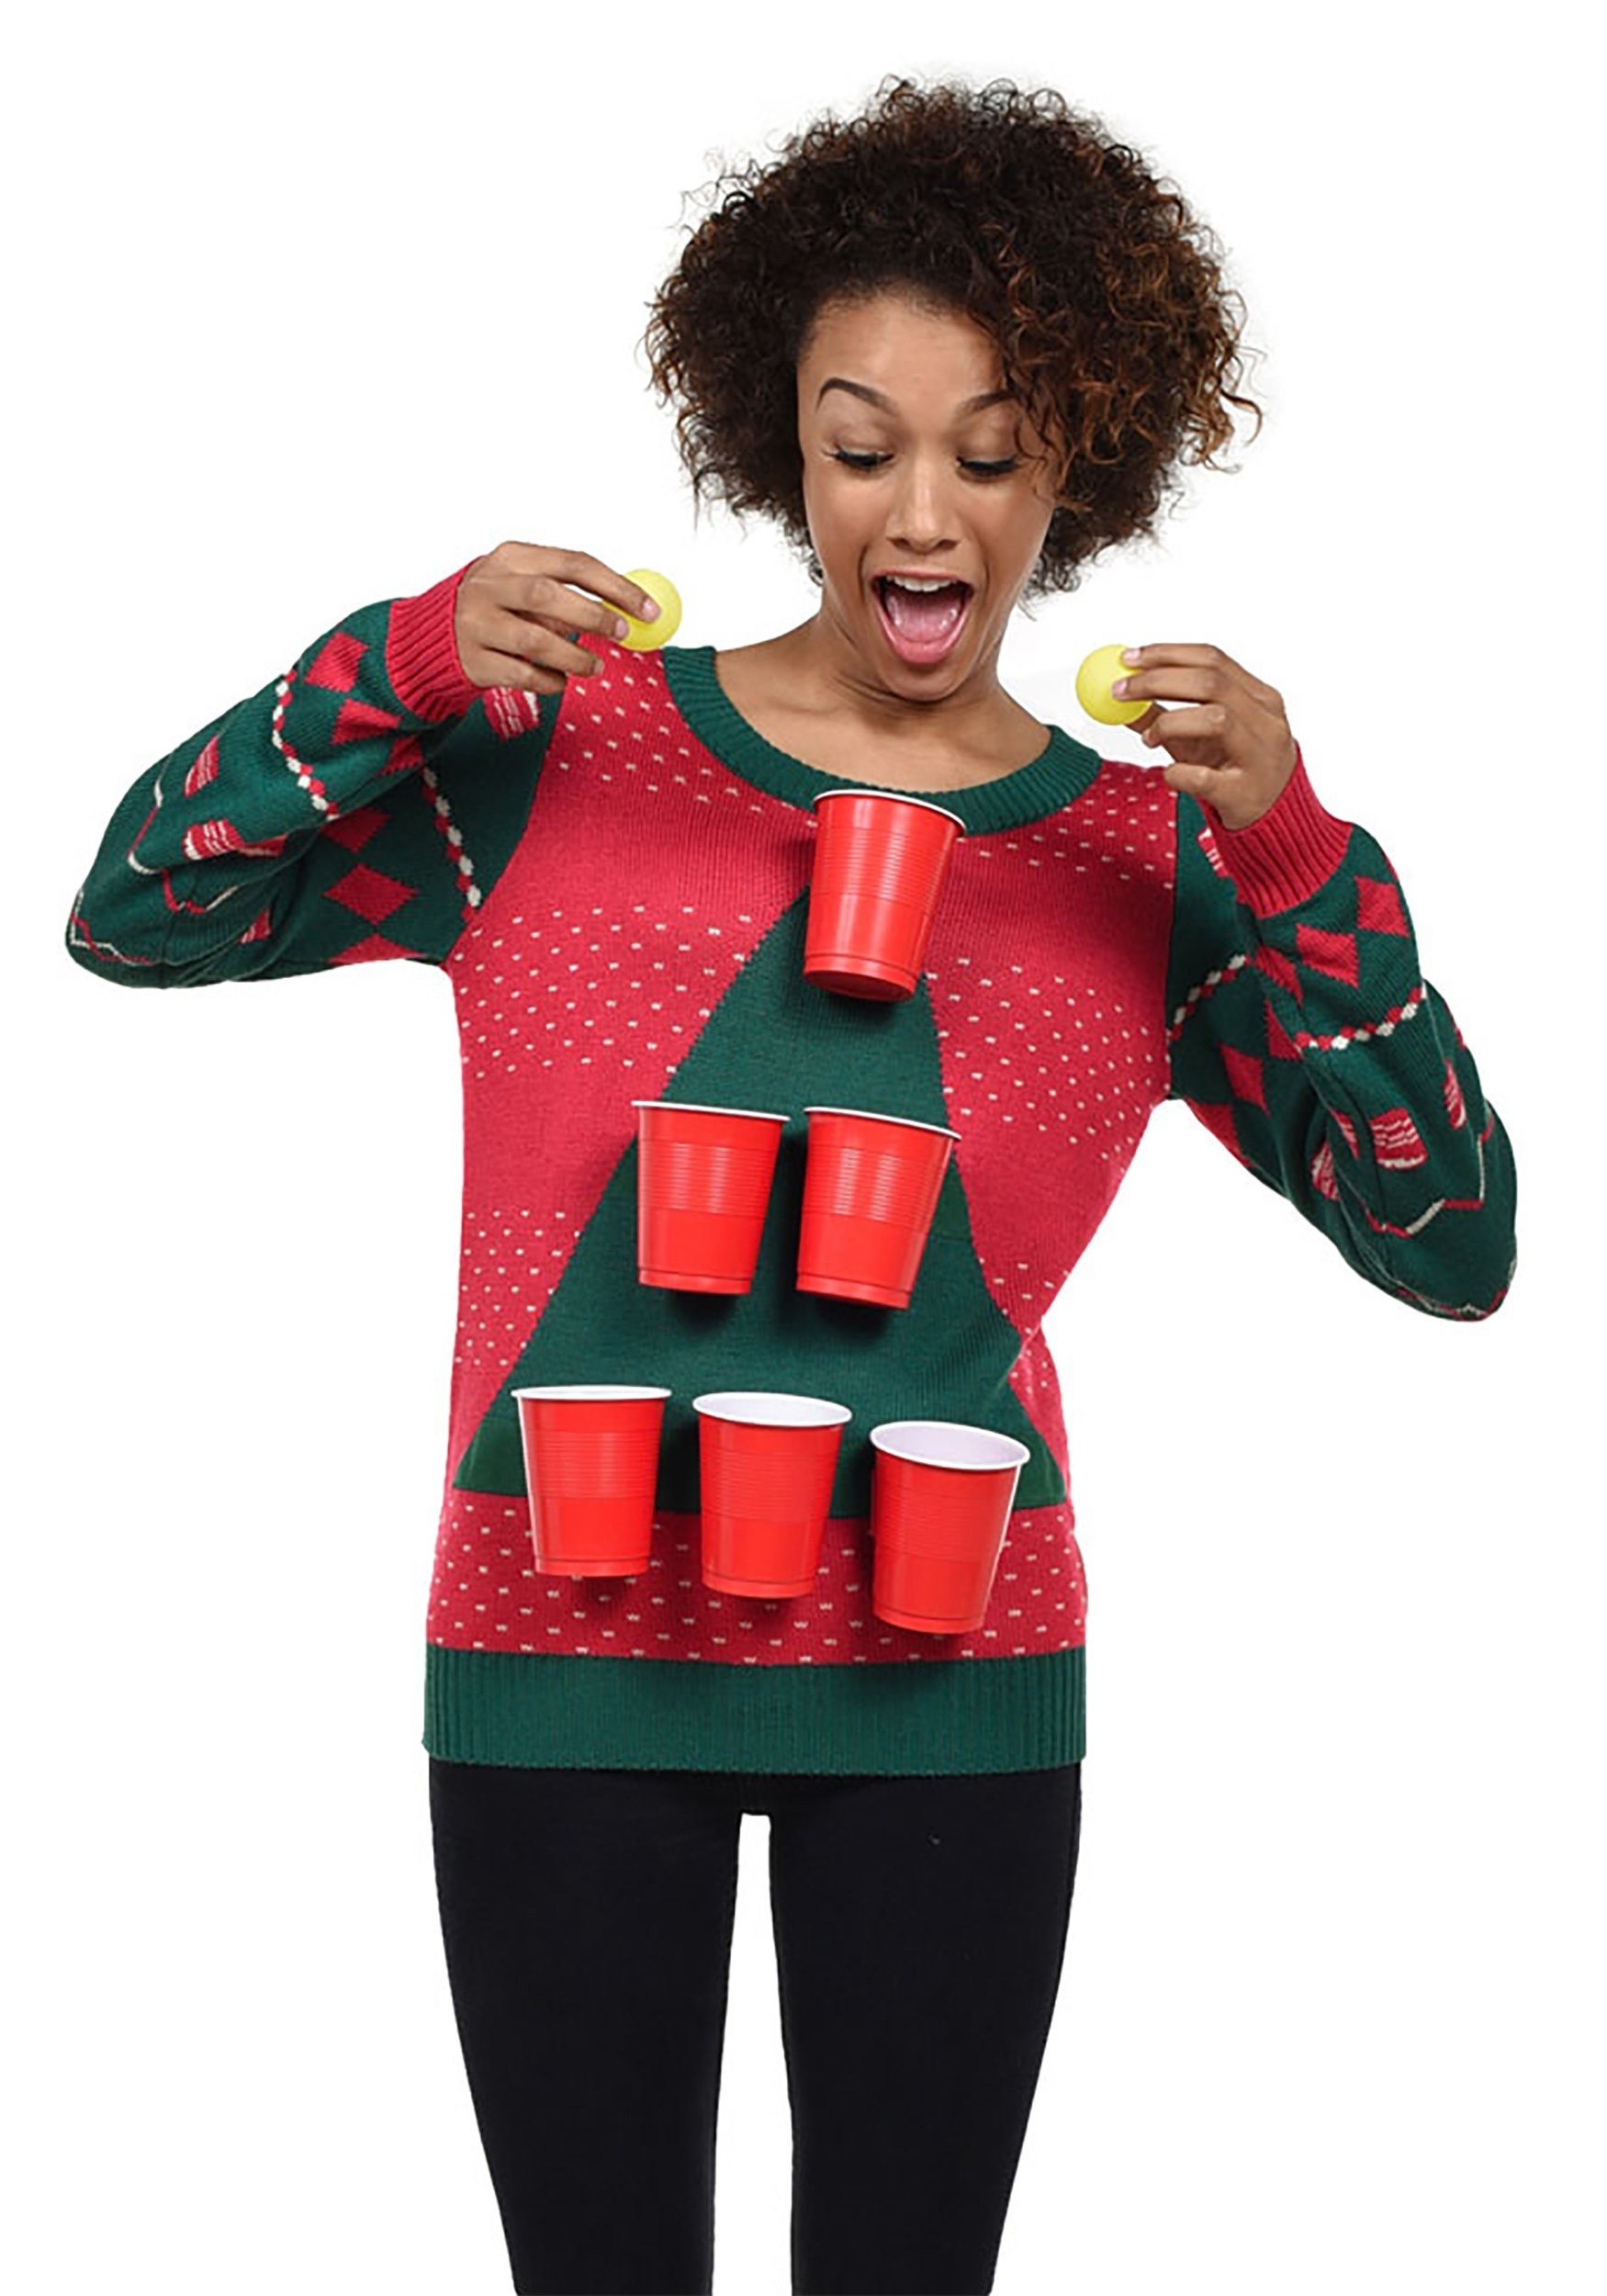 Christmas Sweater Women.Women S Tipsy Elves Beer Pong Ugly Christmas Sweater